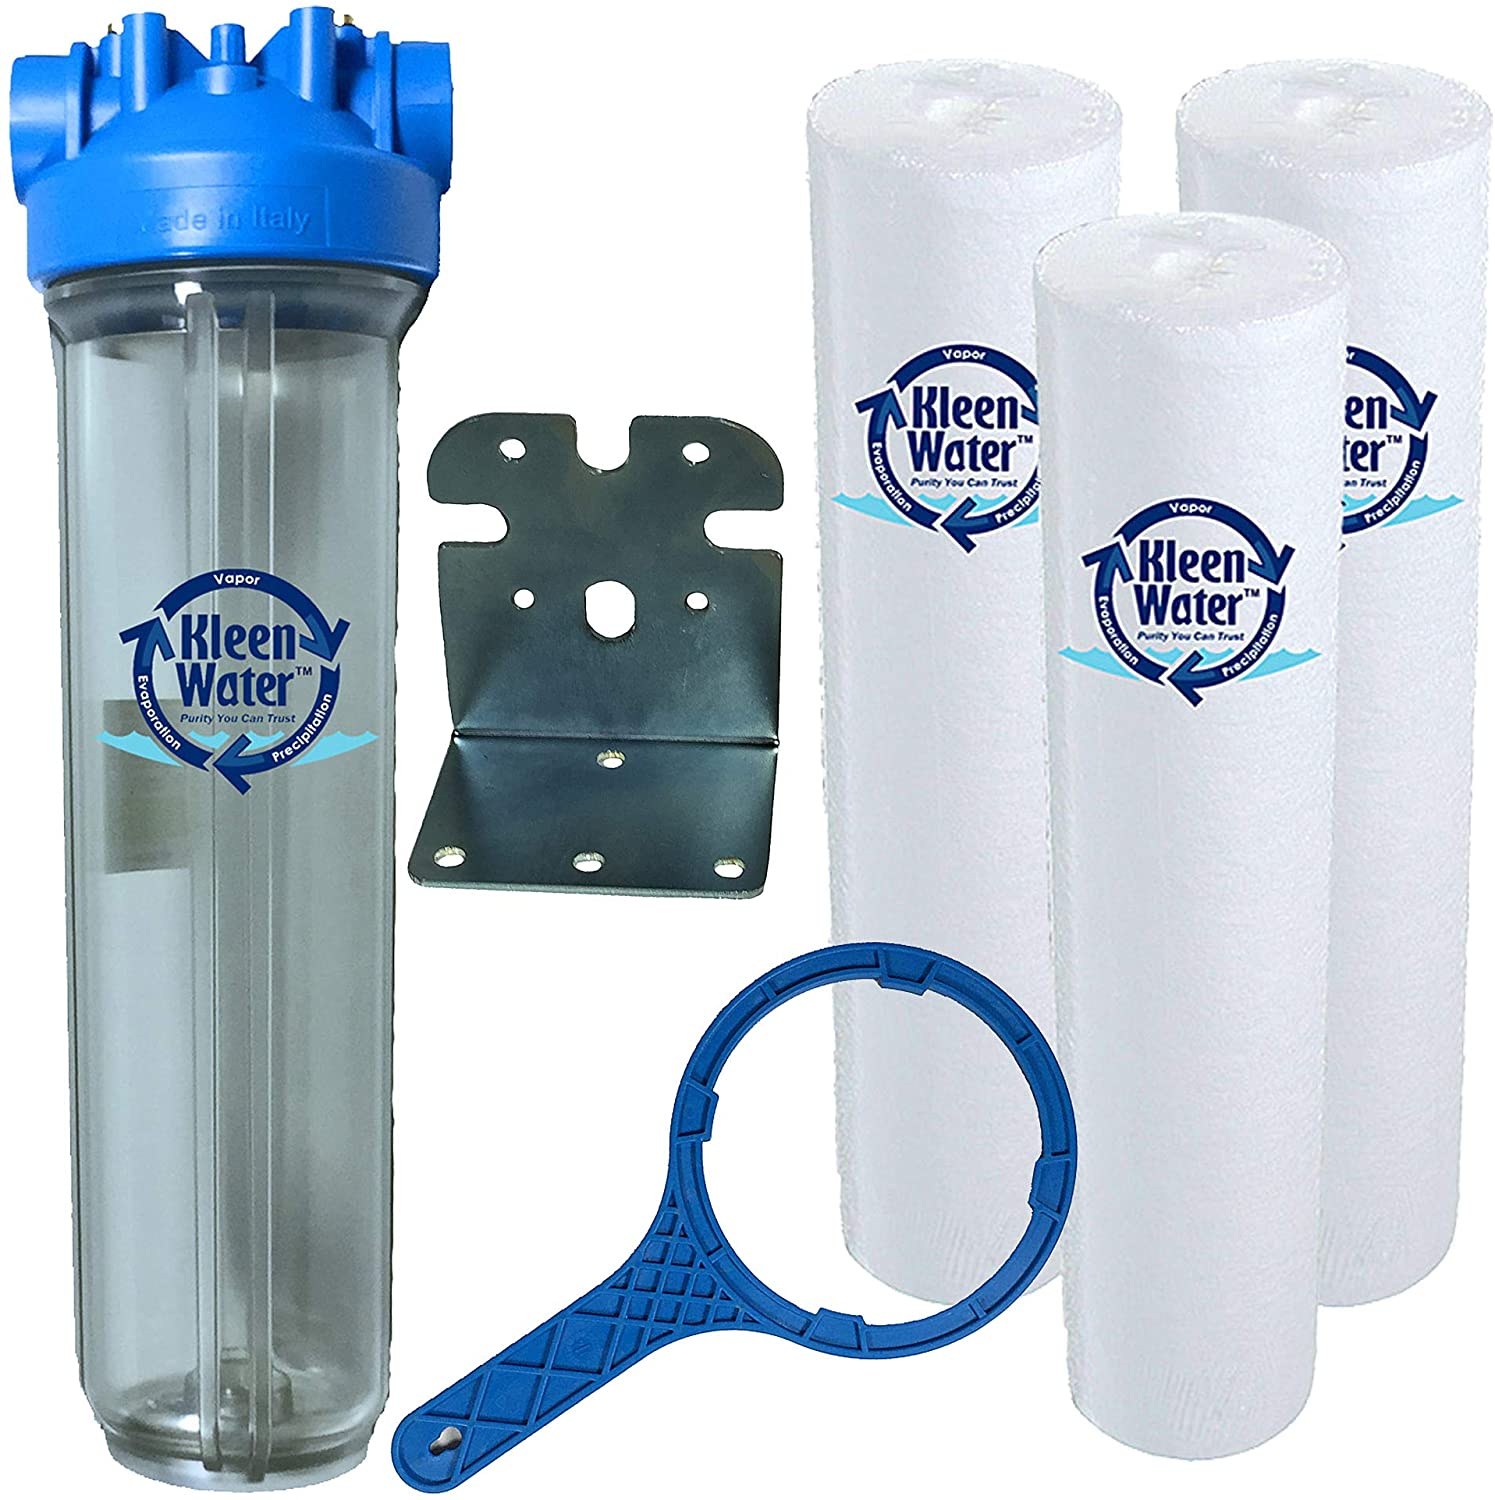 KleenWater Whole House Water Filtration System, Premier 4520 Water Filter, Dirt Rust Sediment Removal Cartridges